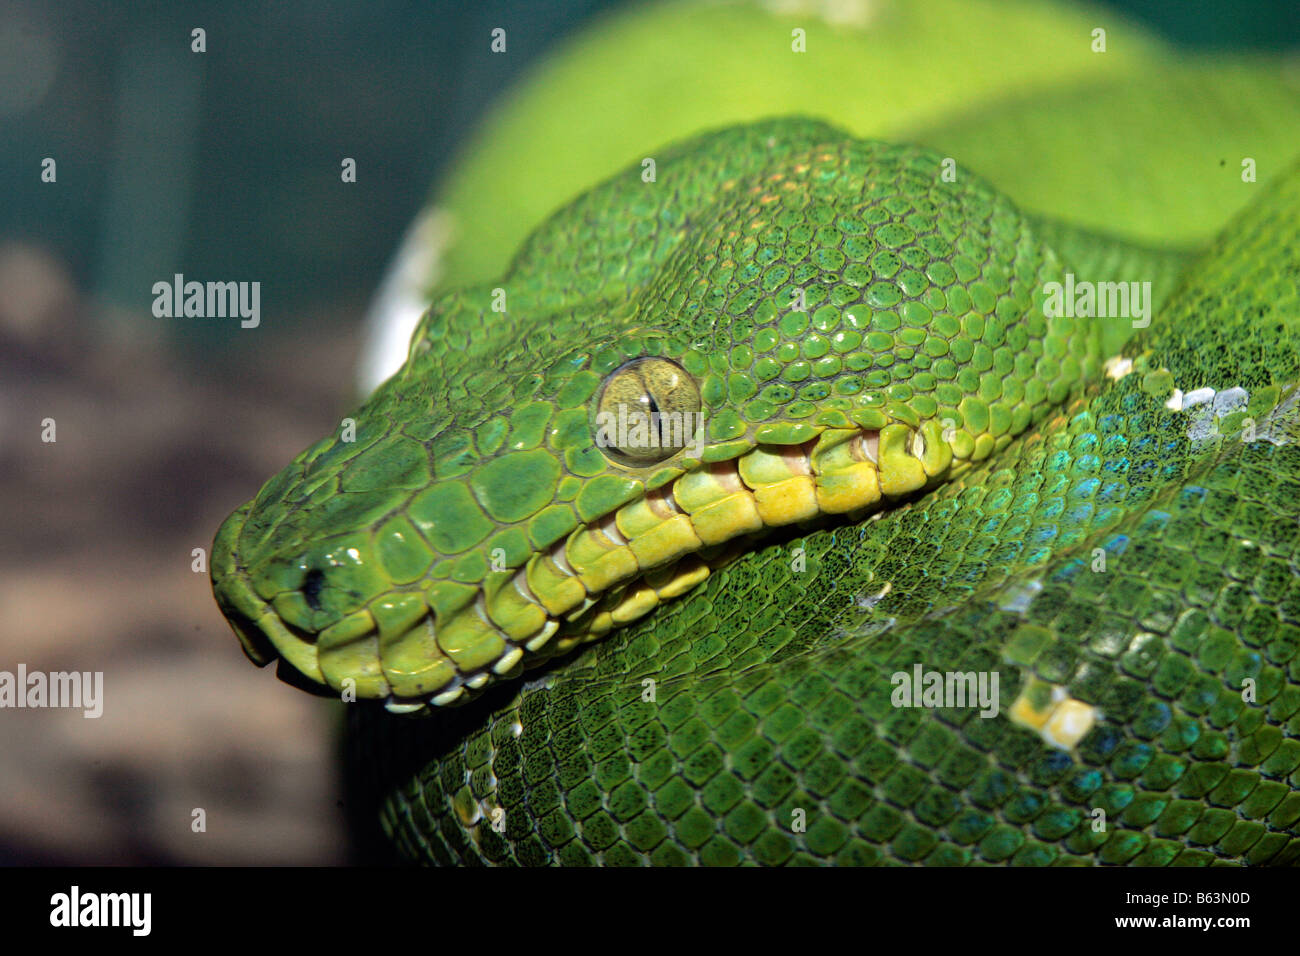 Constrictor Stock Photos & Constrictor Stock Images - Alamy